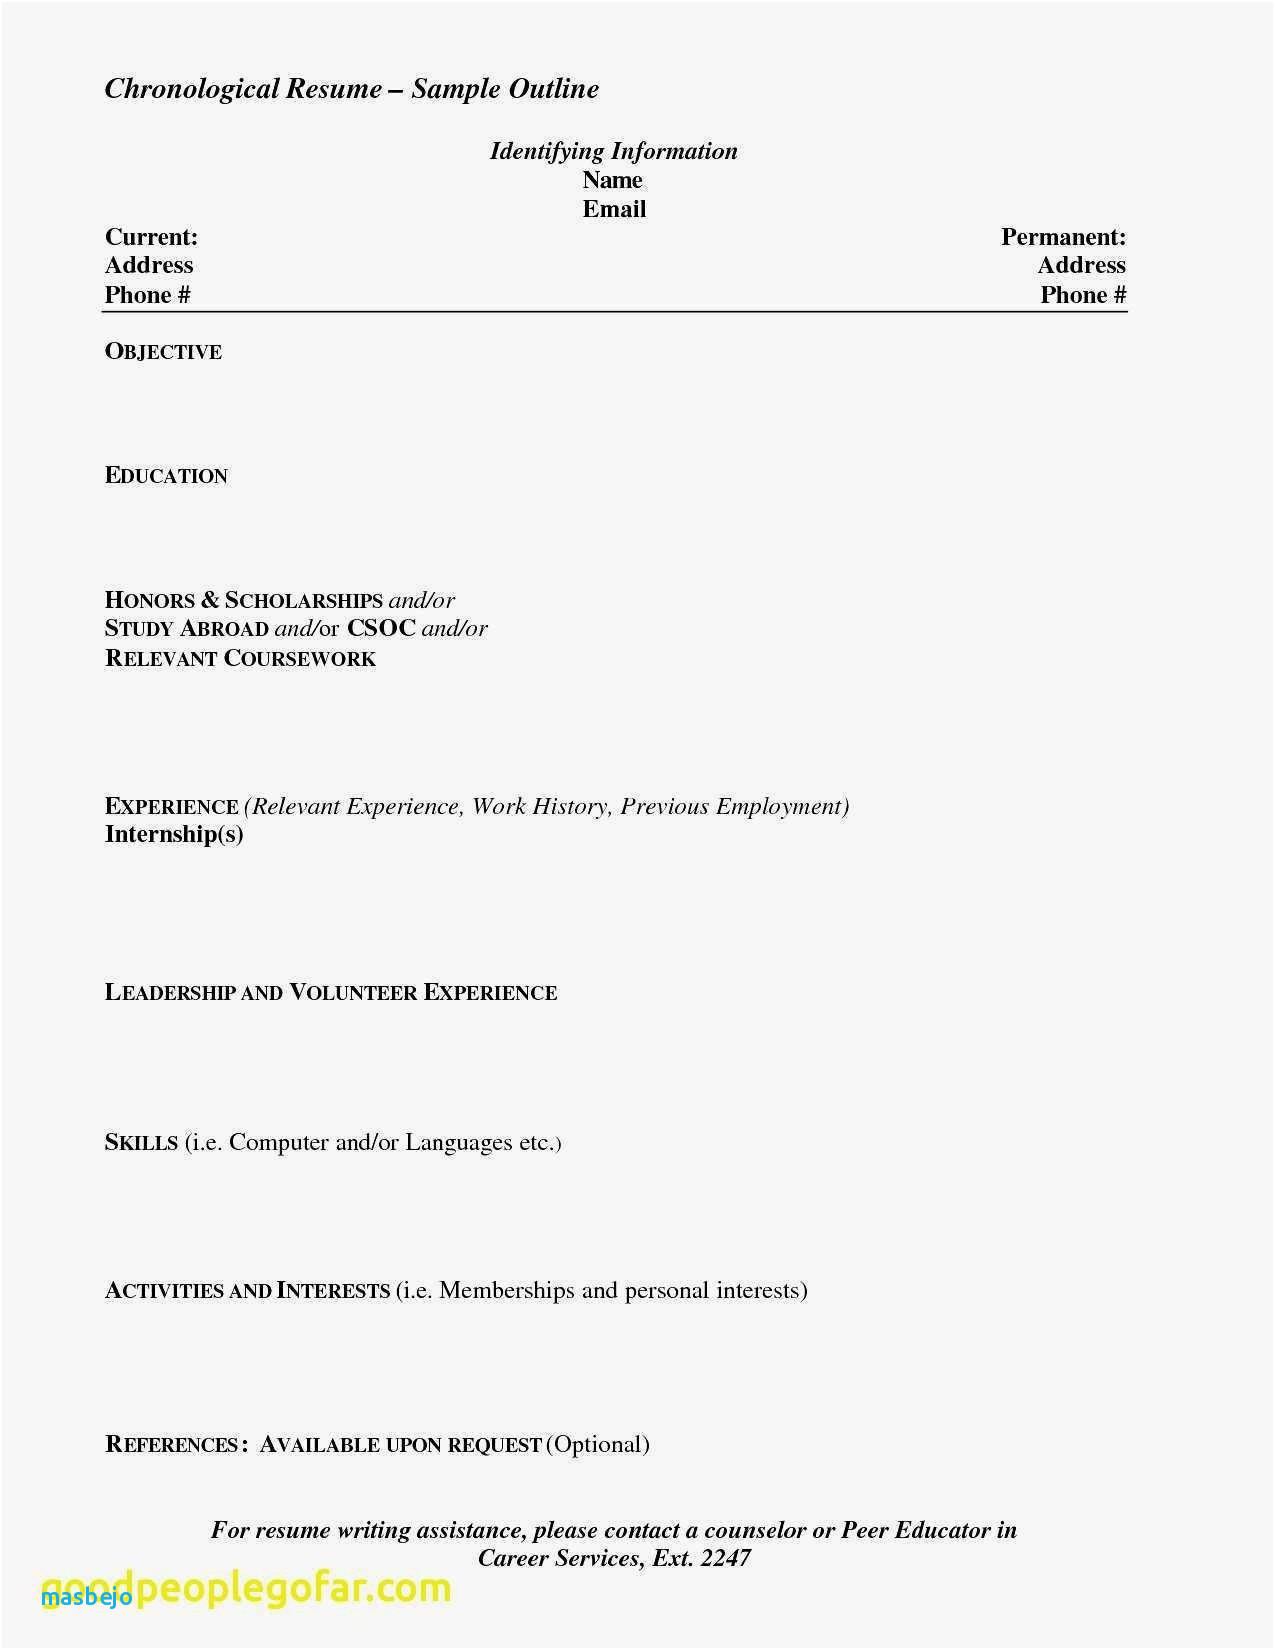 Boston Resume Service - Great Resumes New Resume for Highschool Students Excellent Resumes